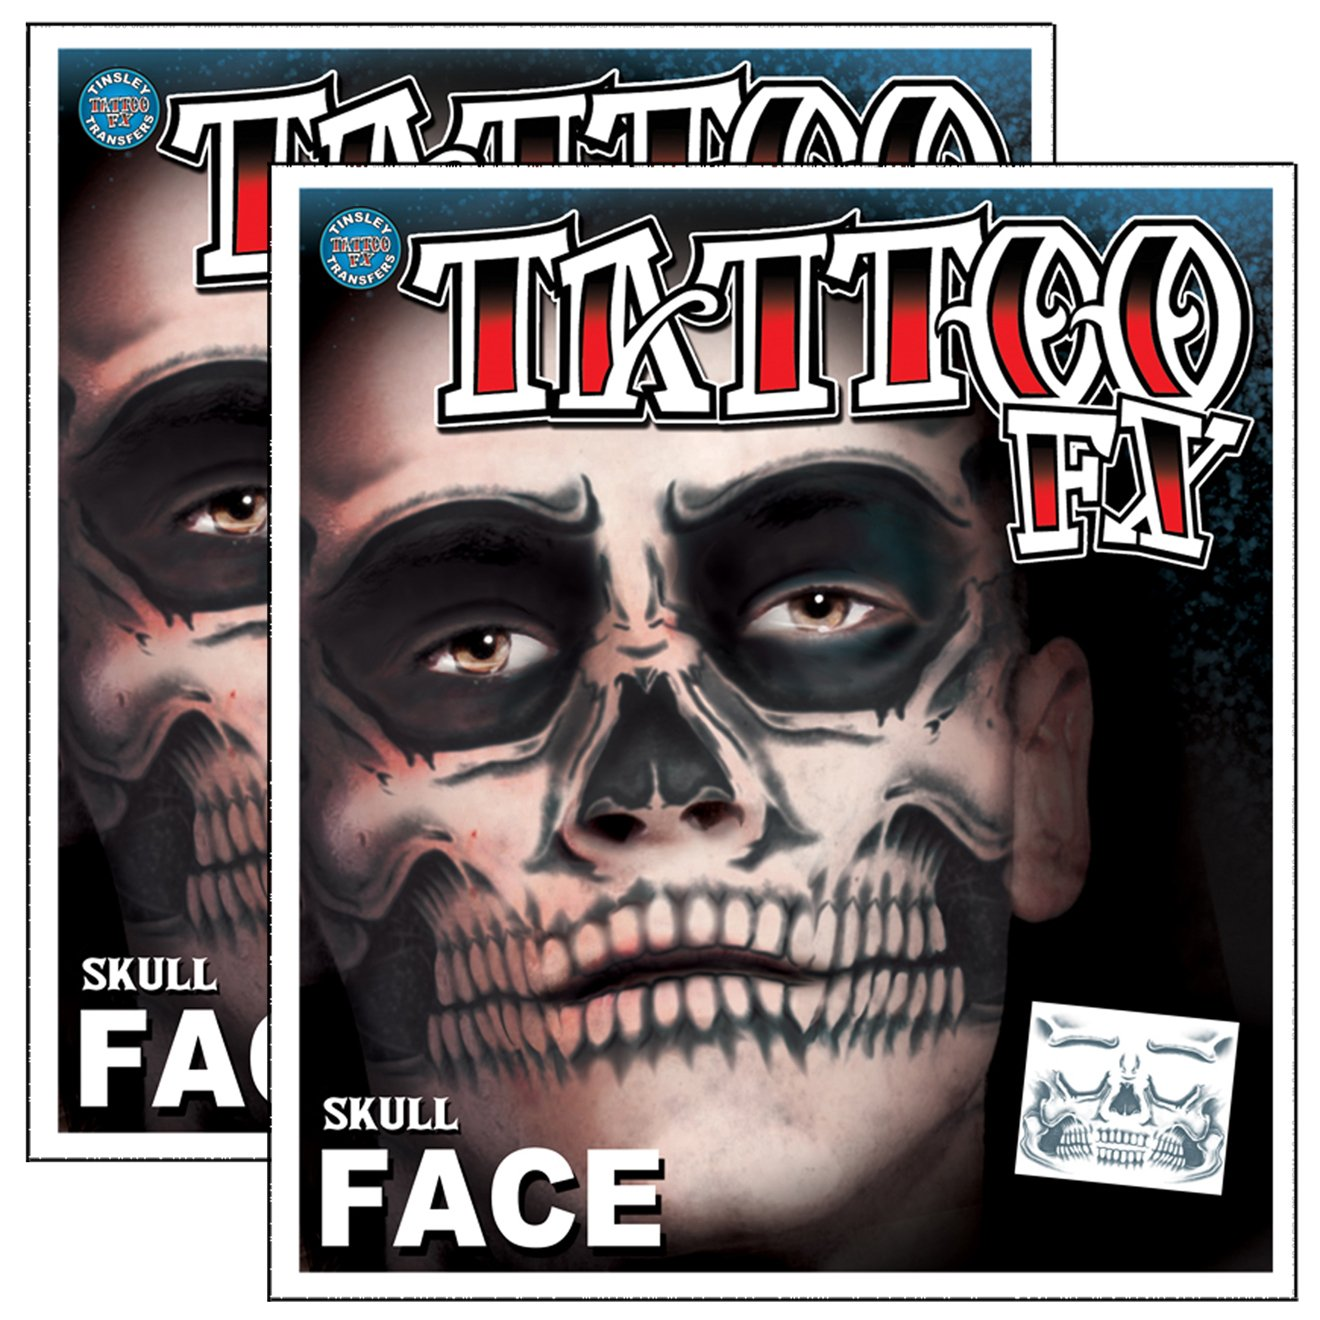 Day of the Dead Skeleton Skull Full Face Temporary Tattoo Kit - 2 Complete Kits by Tinsley Transfers